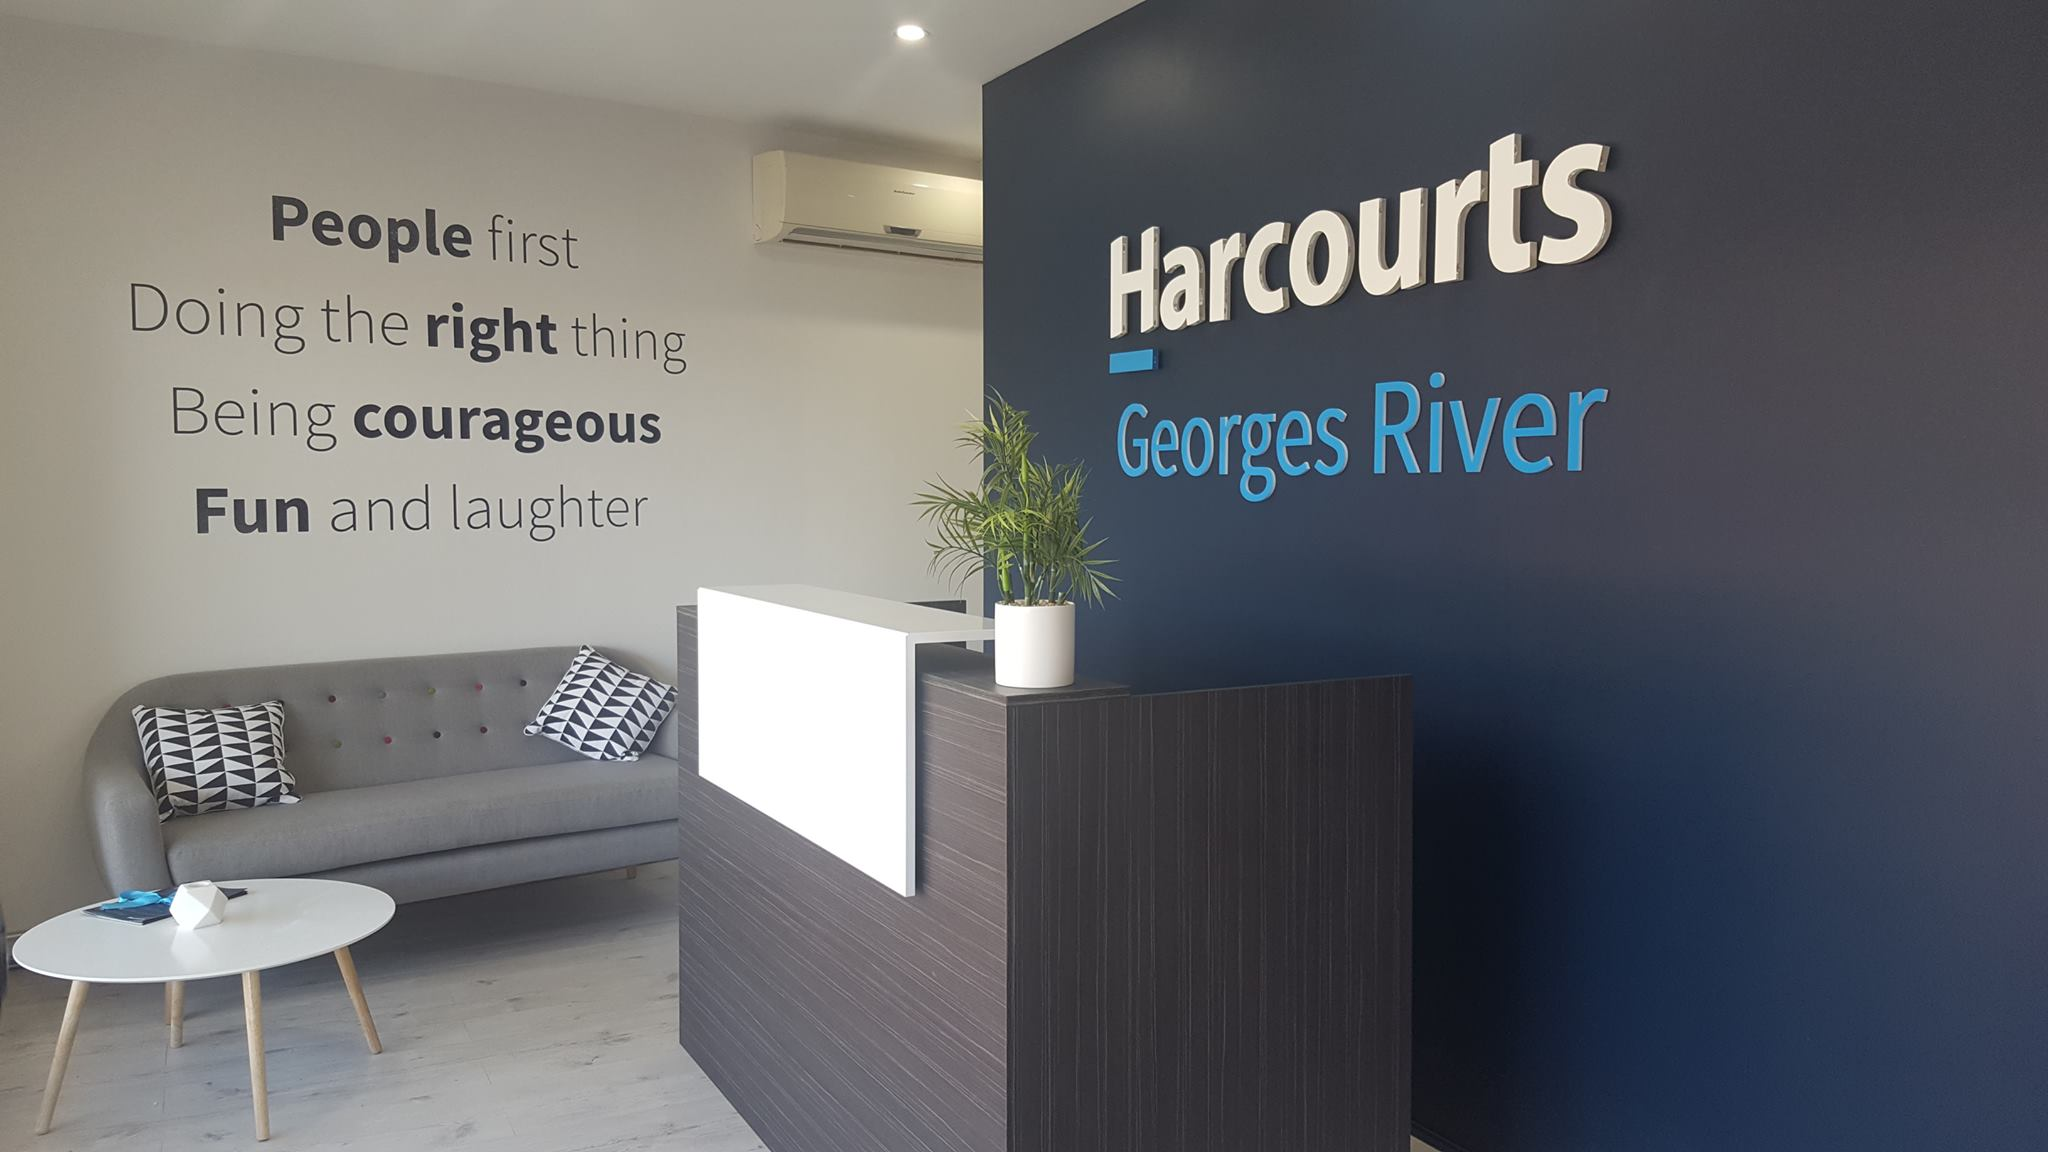 Penshurst welcomes Harcourts Georges River